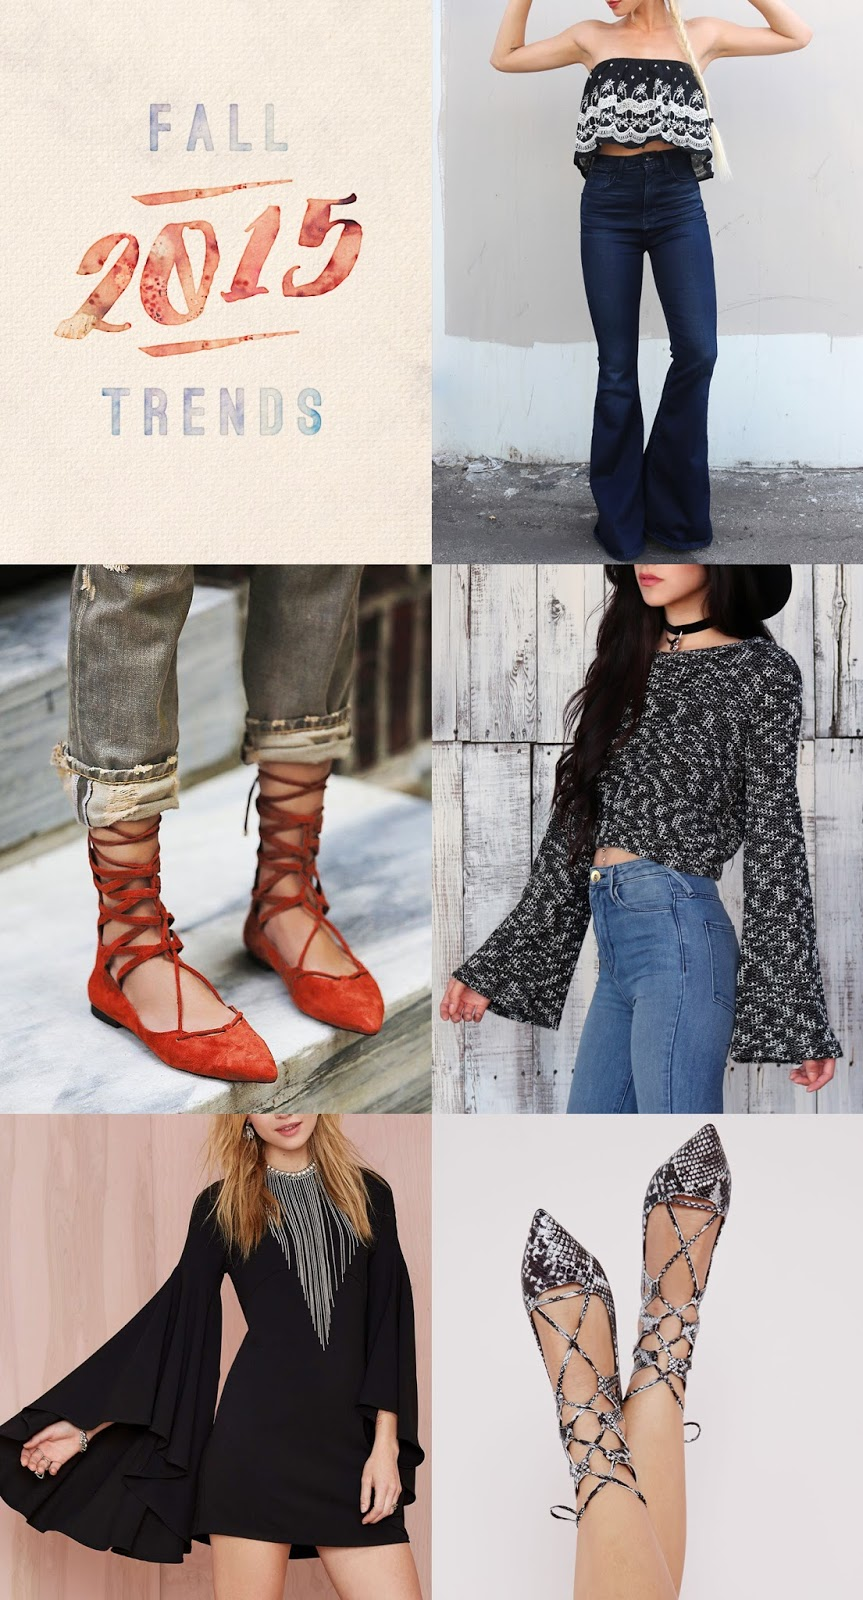 Fall 2015 trends - bells & lace-up